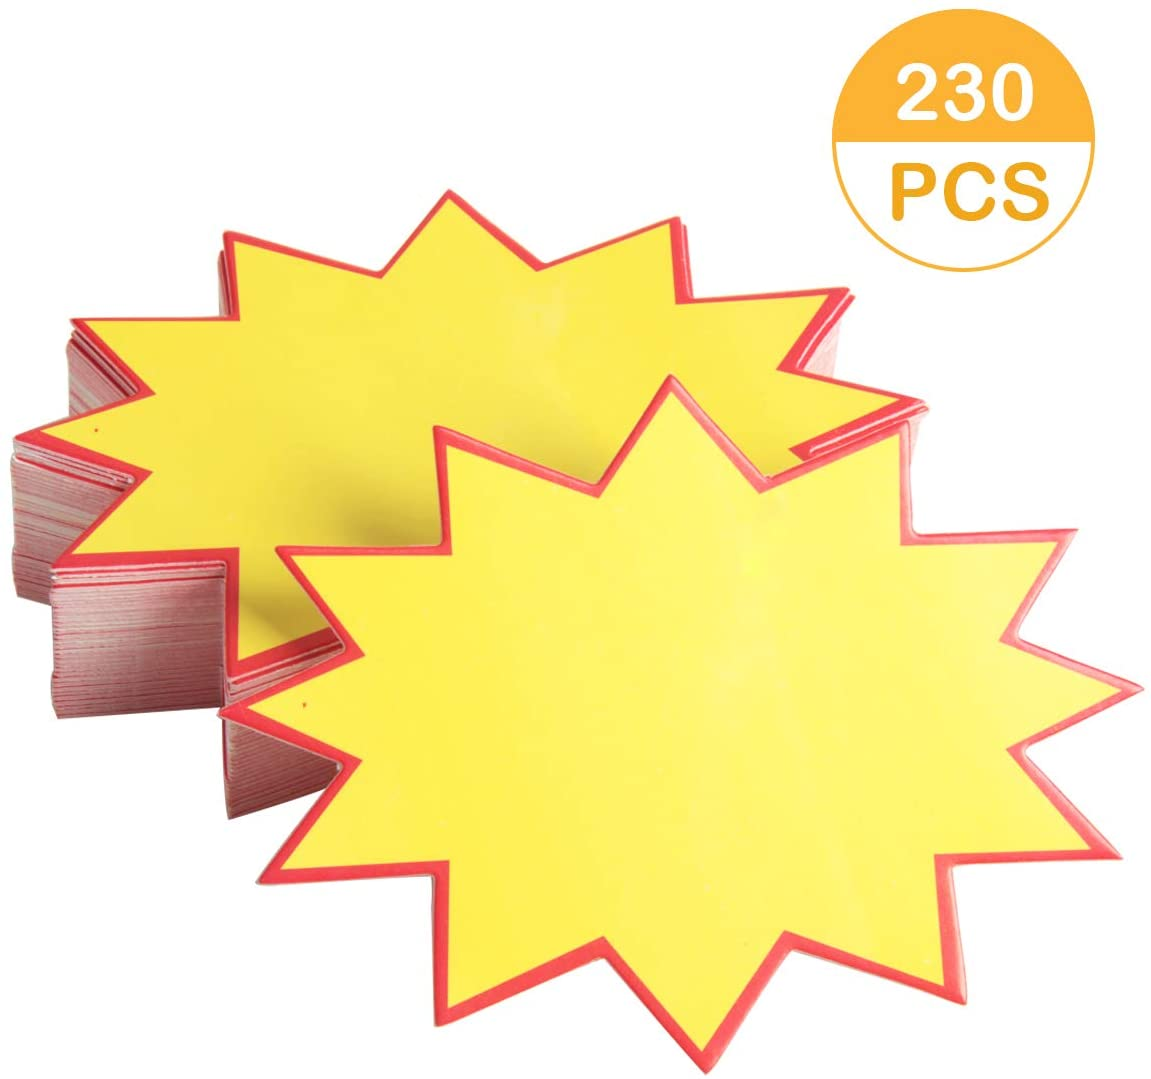 Ira Pollitt 230 Pieces Blank Star Retail Sale Signs Starburst Signs Burst Paper Signs Sales Price Label Tags for Retail Store Party Favors,Real Estate and Garage Sales,3.5 x 4.7 inch